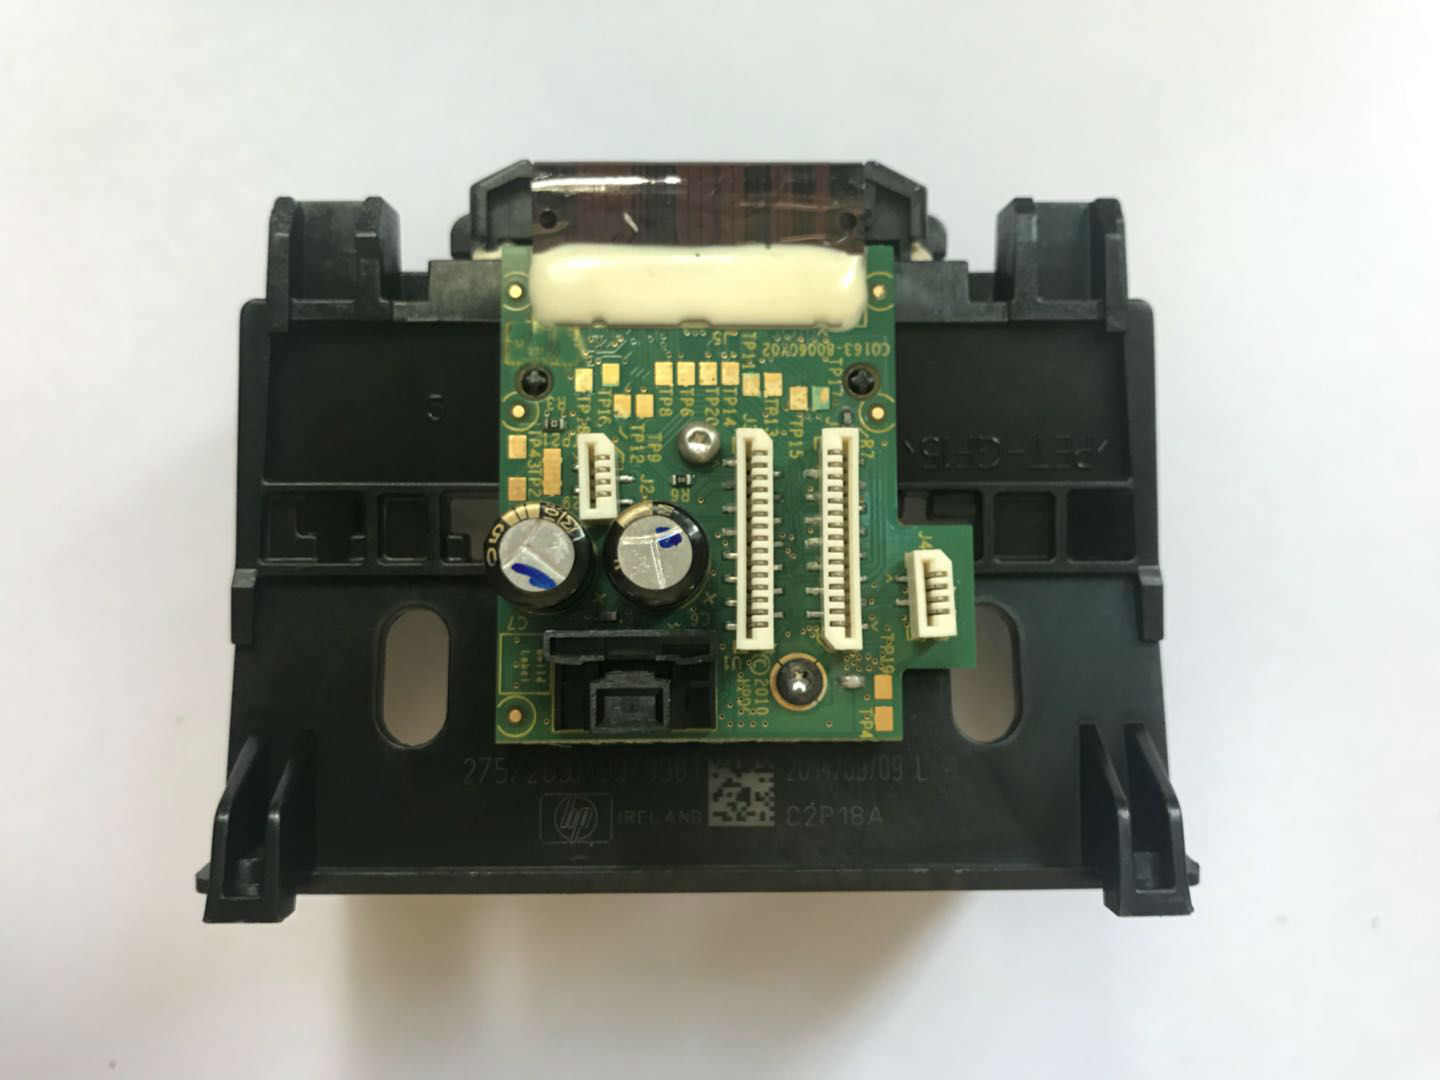 Details about REFURBISHED PRINT HEAD FOR HP 6950 6960 6963 6964 6965 6966  6968 6670 6971